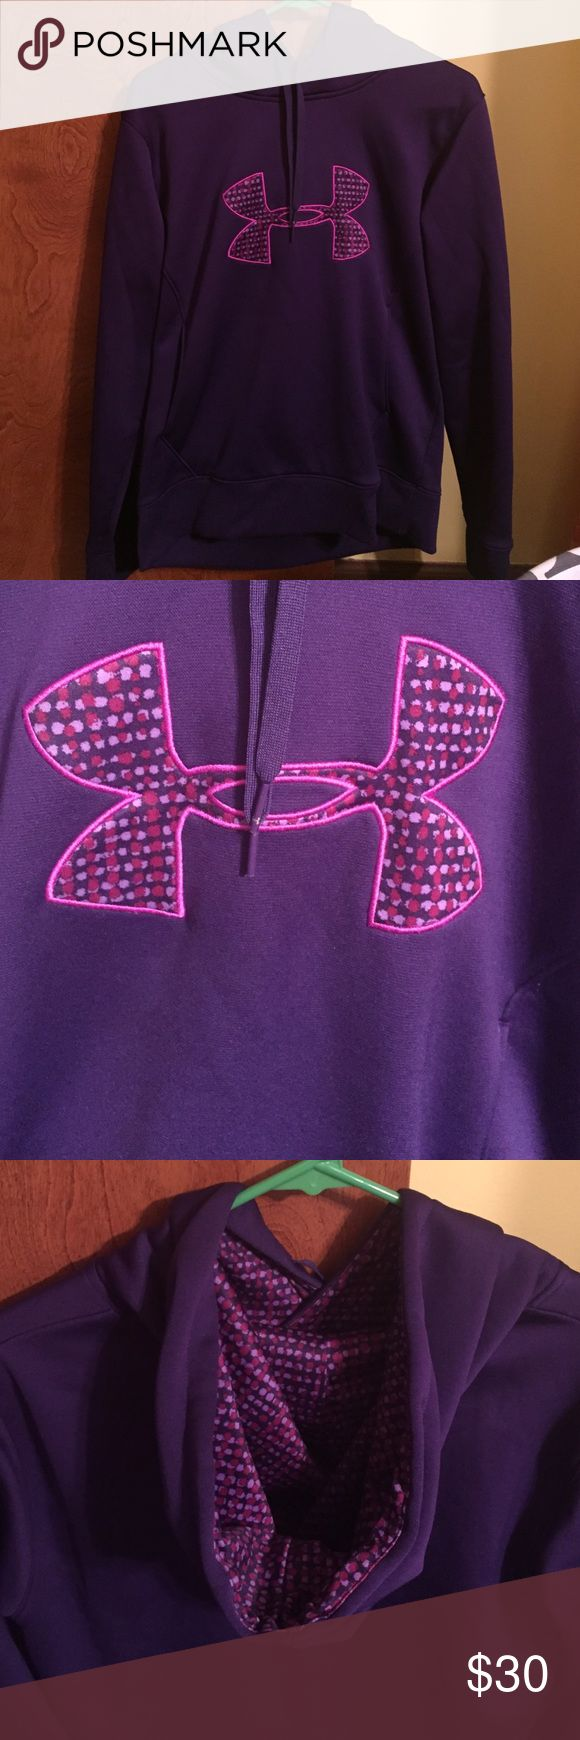 Under armour hoodie Purple women's under armour hoodie. Polka dot print in logo and hood. Women's size medium. Great used condition ☺️ Under Armour Tops Sweatshirts & Hoodies